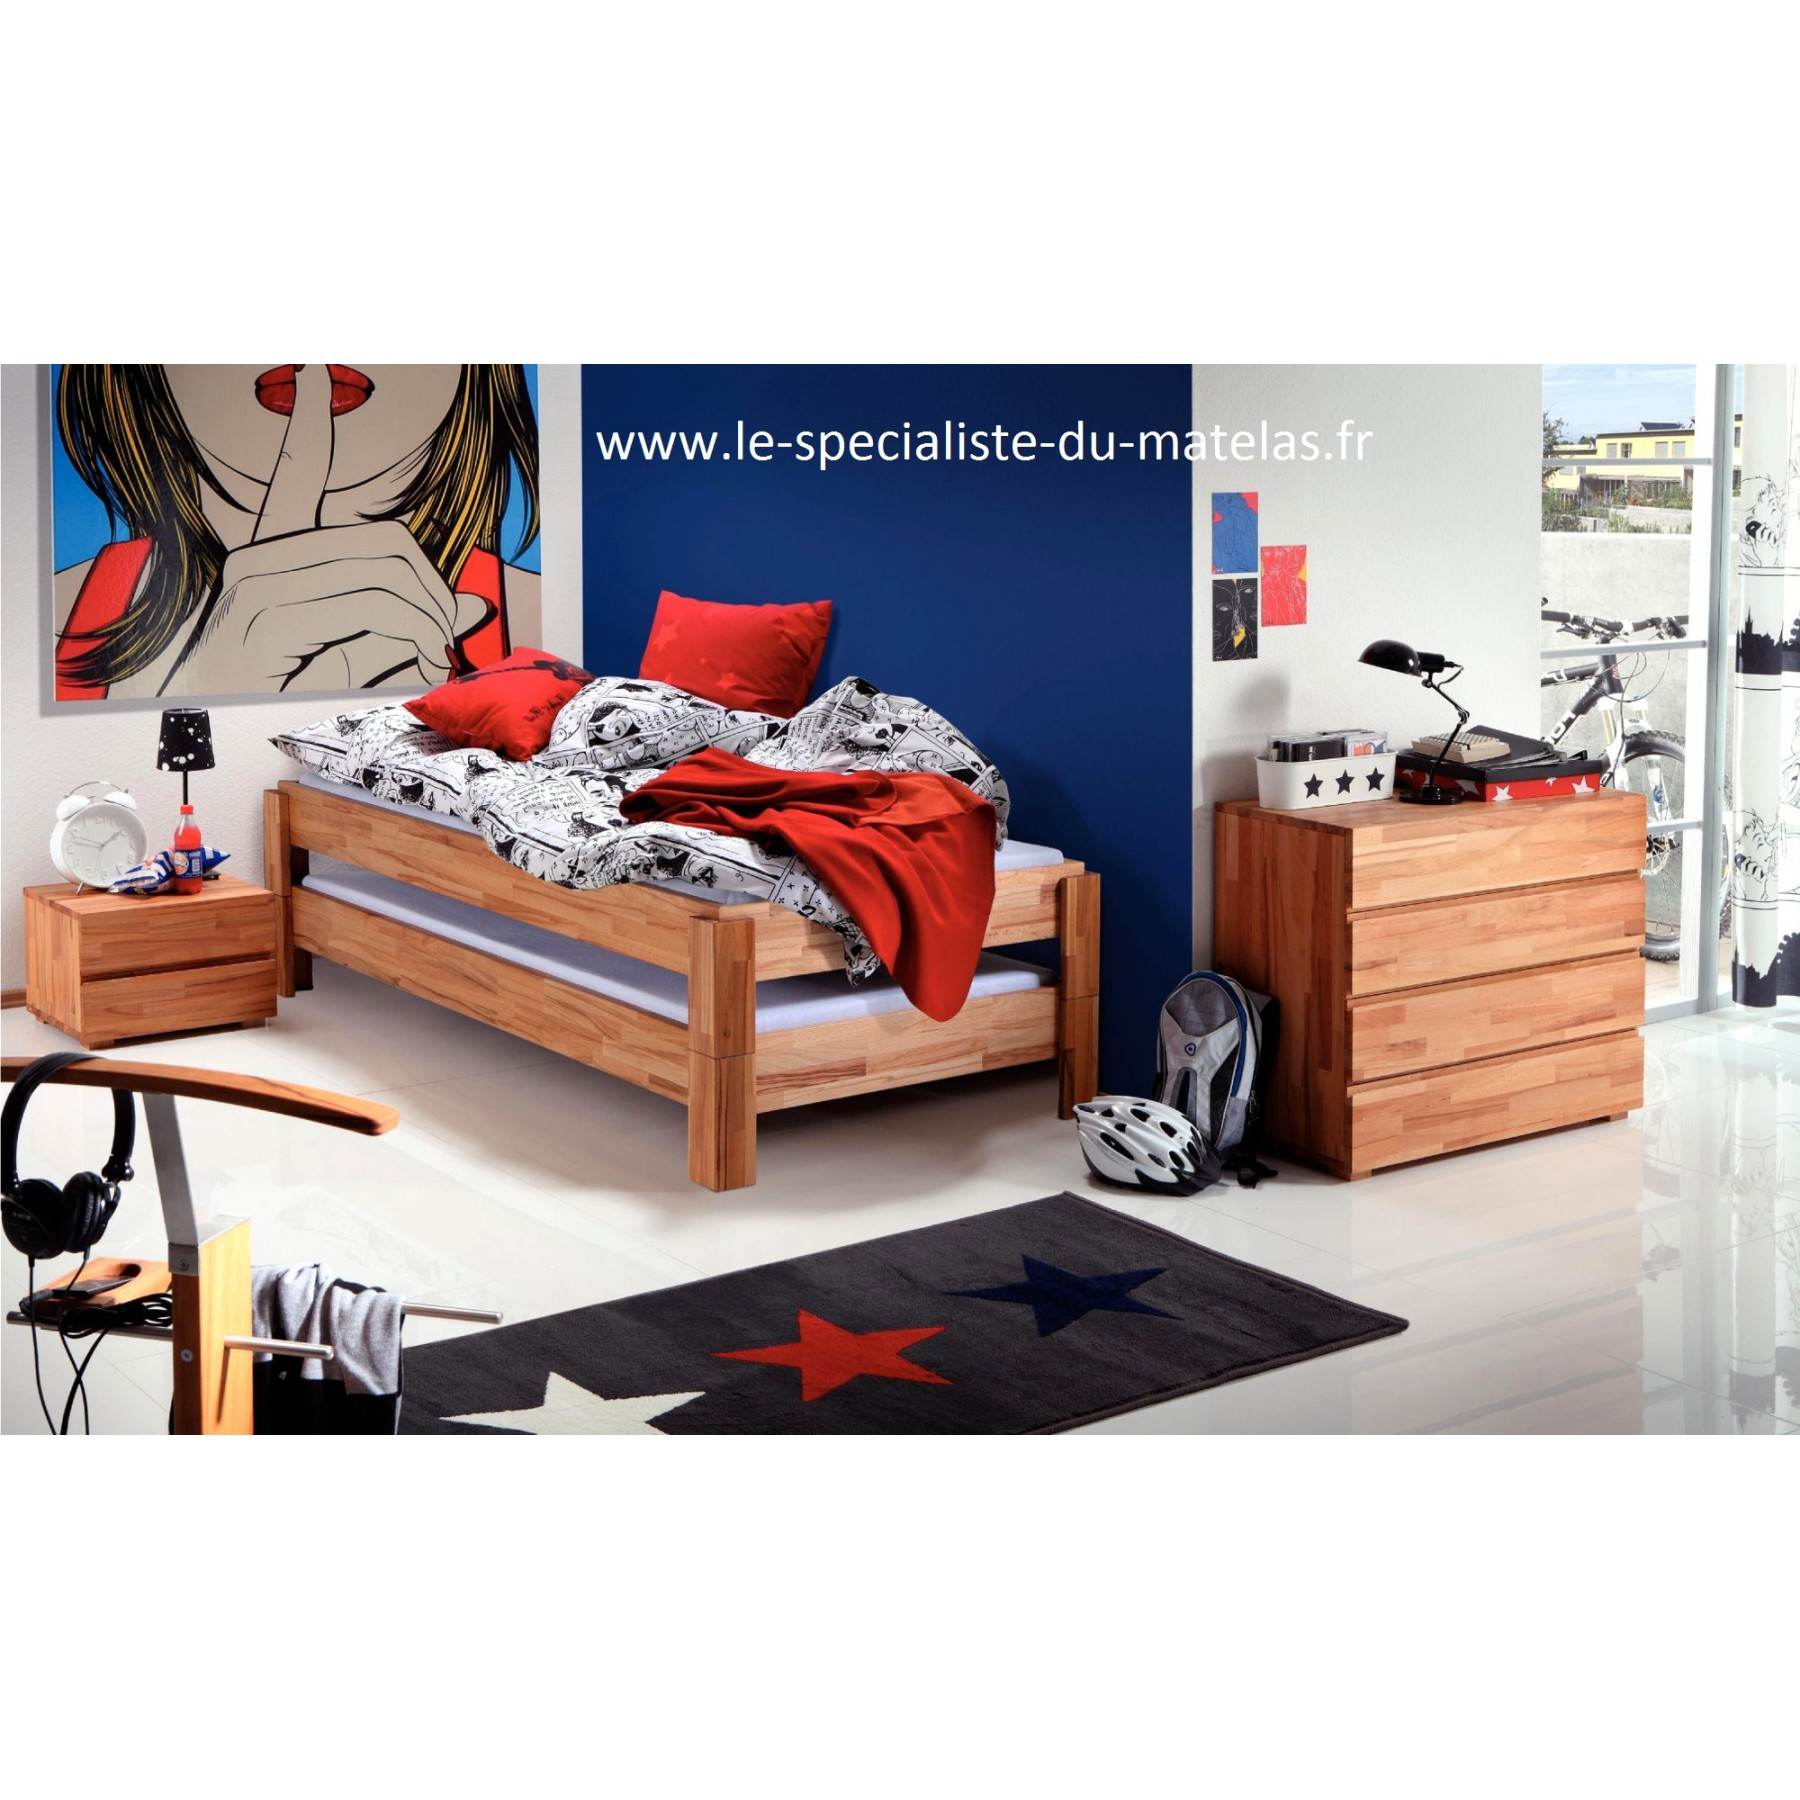 lit gigogne hasena mod le amigo d couvrir au le sp cialiste du matelas. Black Bedroom Furniture Sets. Home Design Ideas